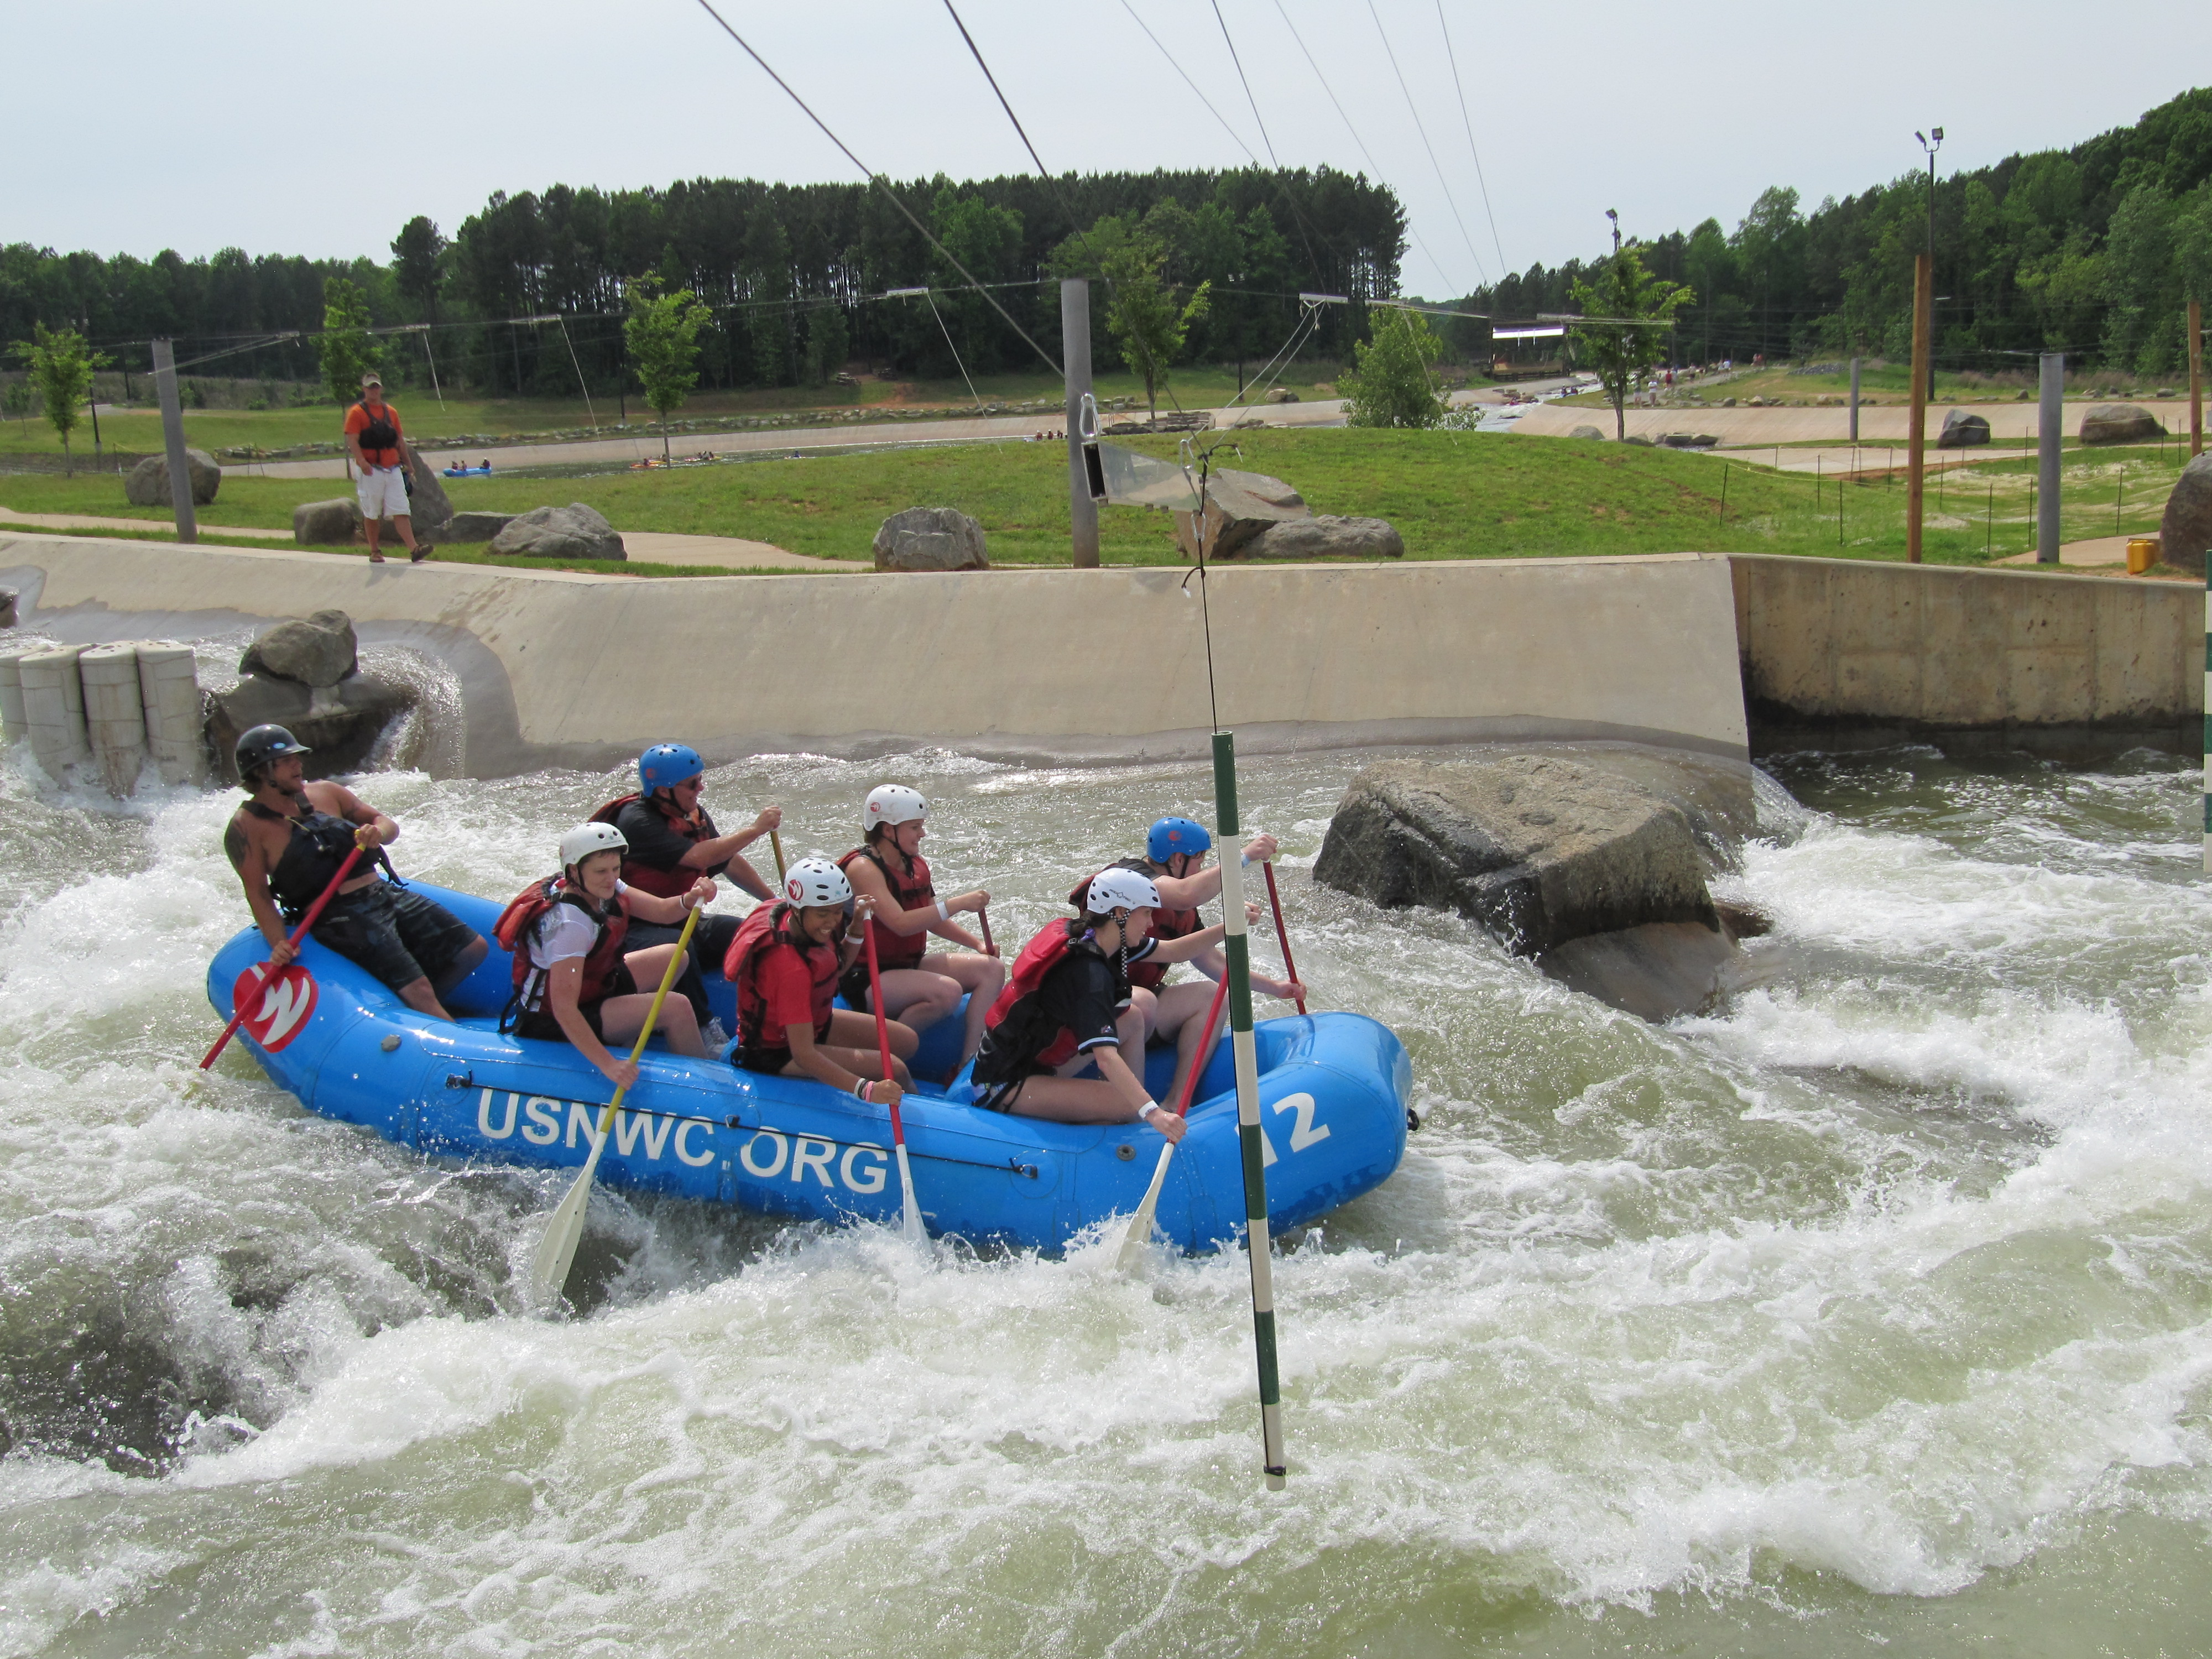 U S National Whitewater Center